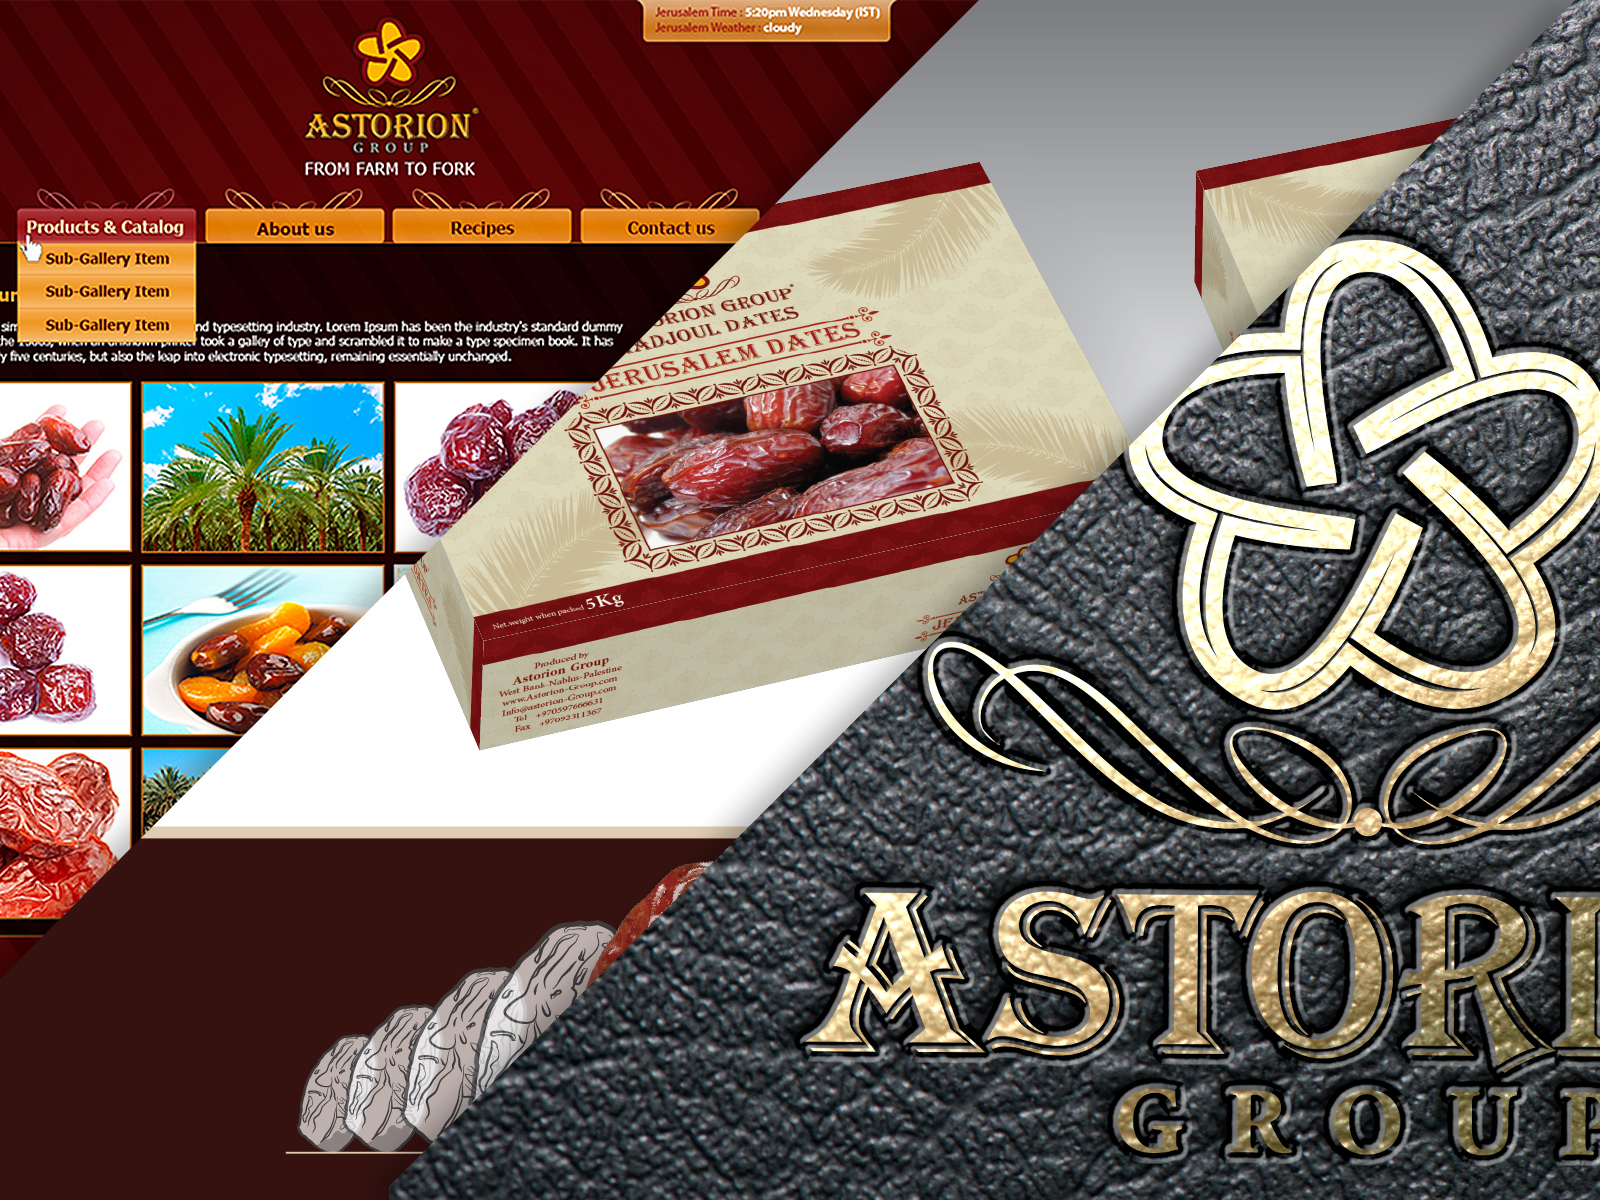 Astorion Group